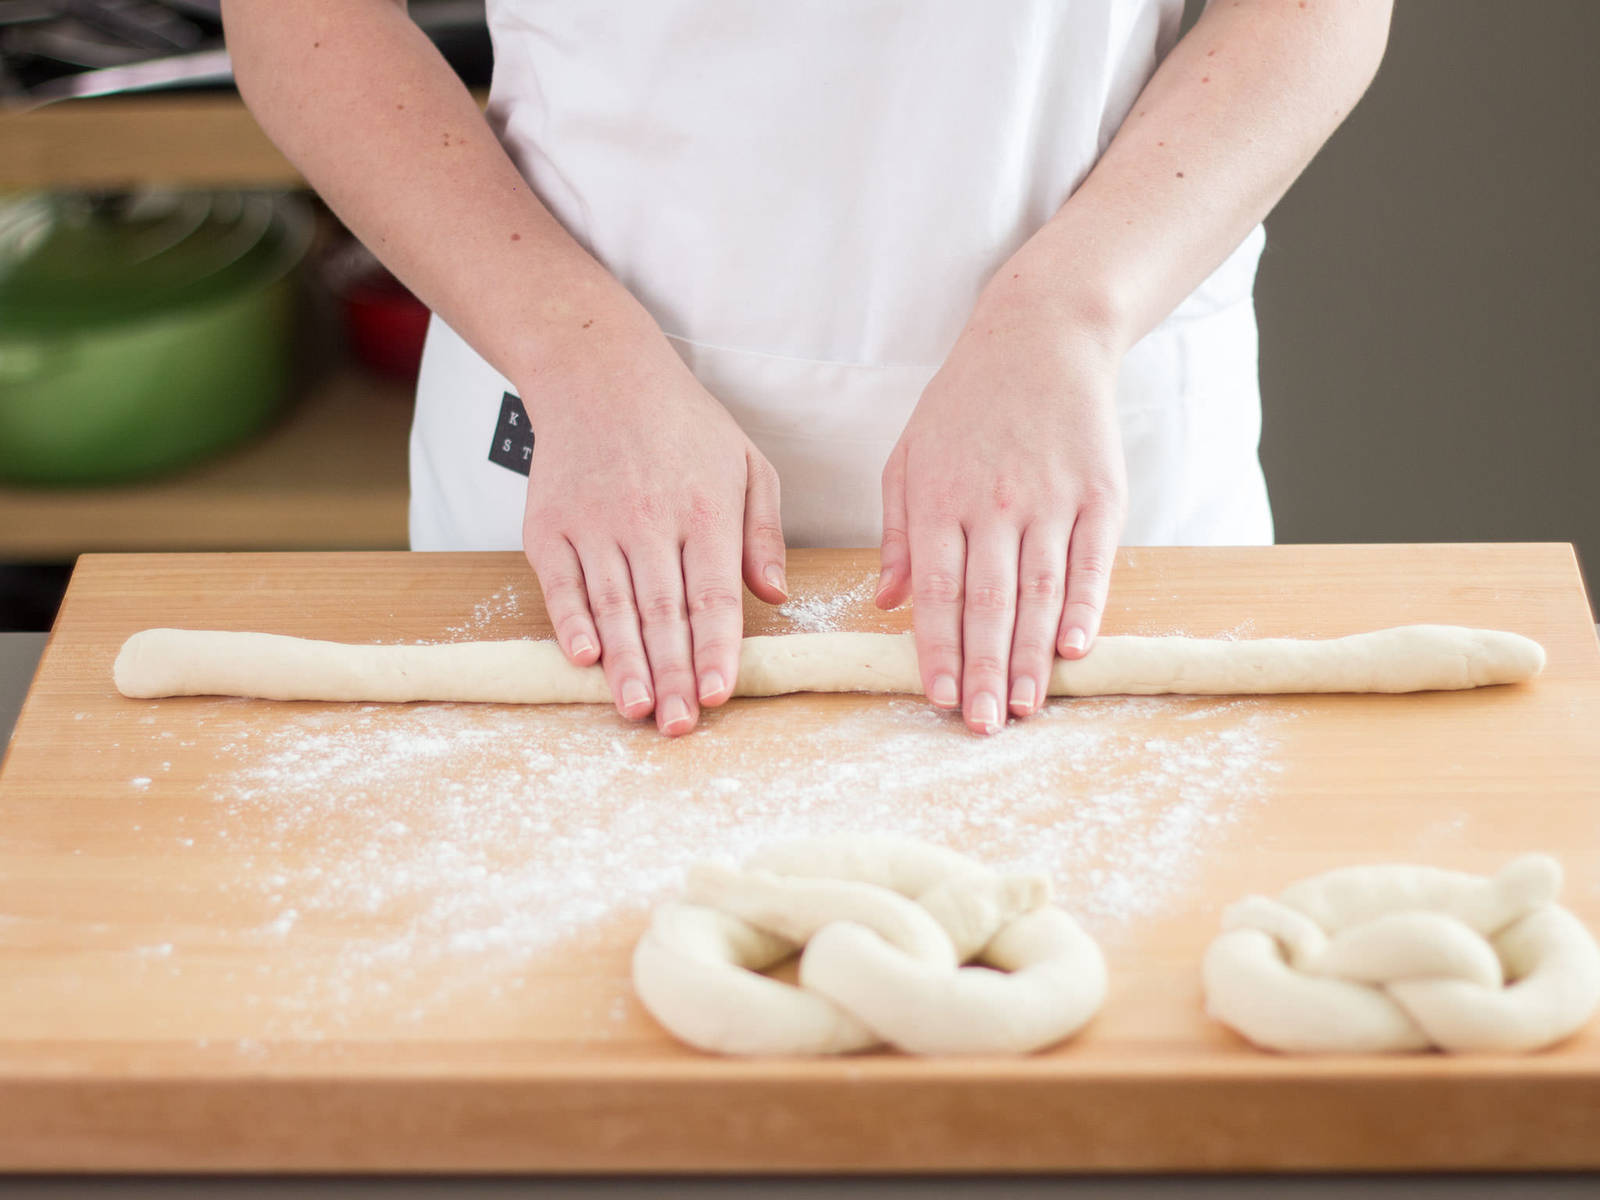 Preheat oven to 200°C/400°F. On a lightly floured surface, knead the dough once more and divide into ten portions. Roll each into long strips and fold into a pretzel shape.